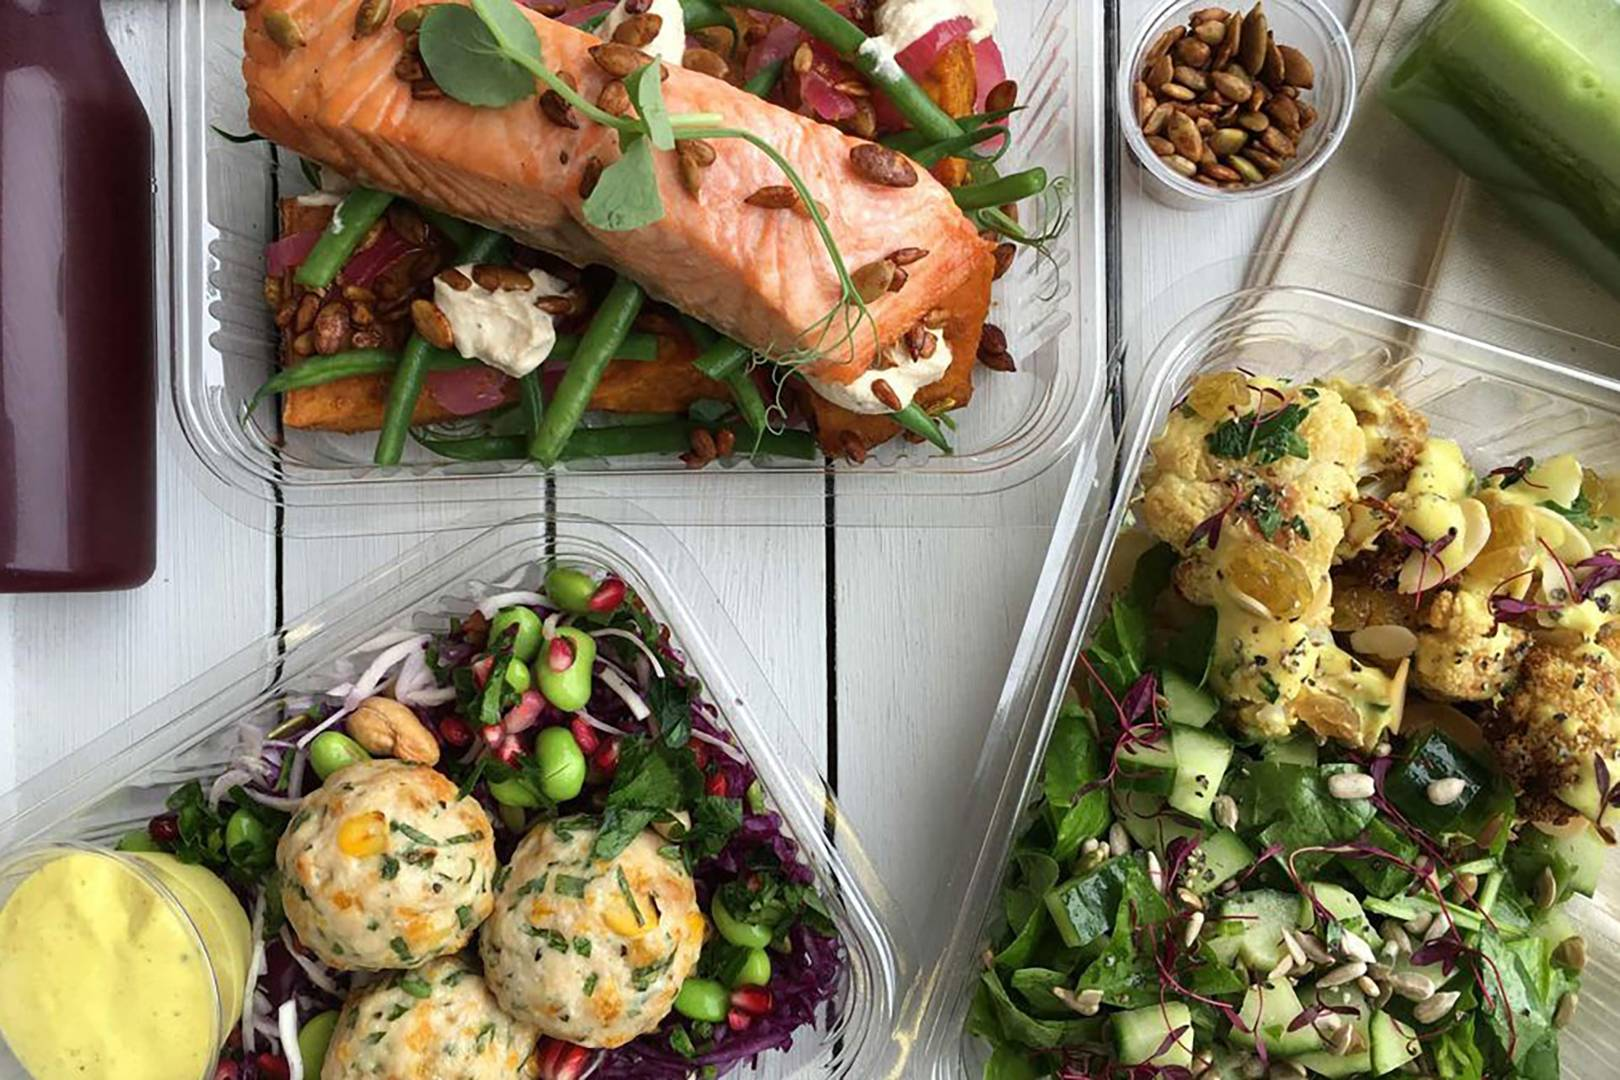 Meal delivery uk the best healthy meal delivery options ranked meal delivery uk the best healthy meal delivery options ranked glamour uk forumfinder Images